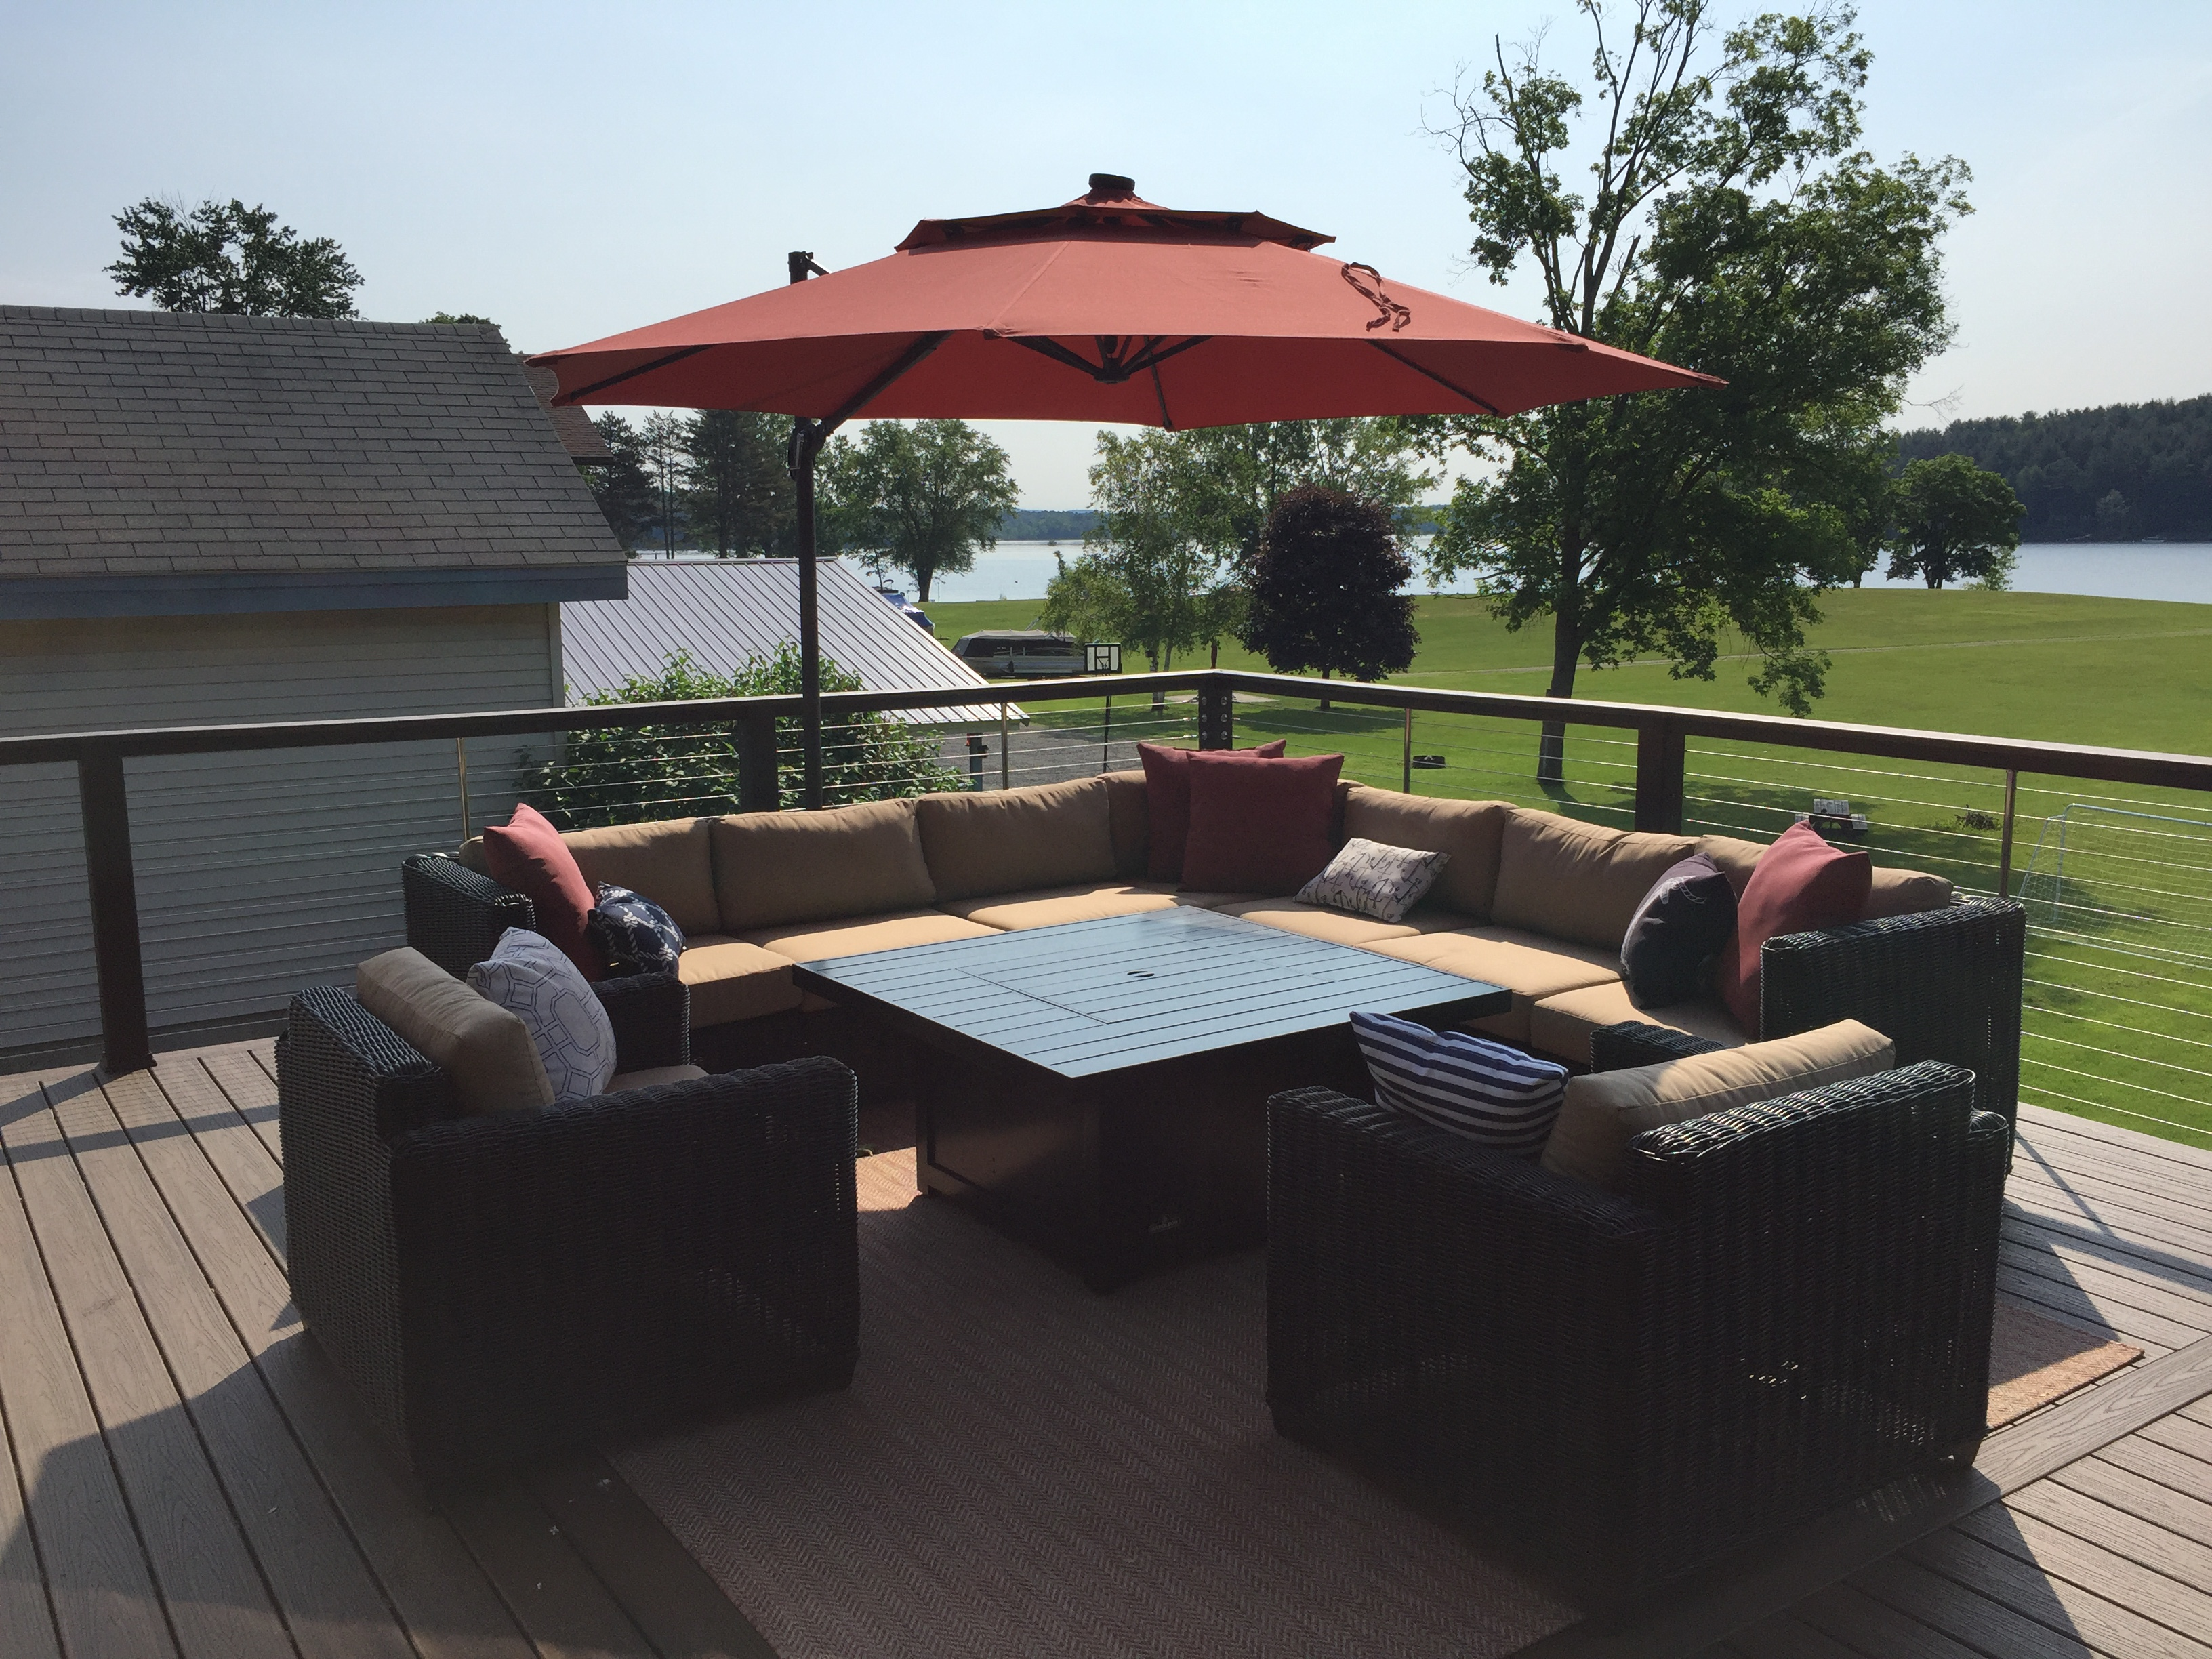 Outdoor Living | Patriot Construction of Upstate New York ... on Patriot Outdoor Living id=70972